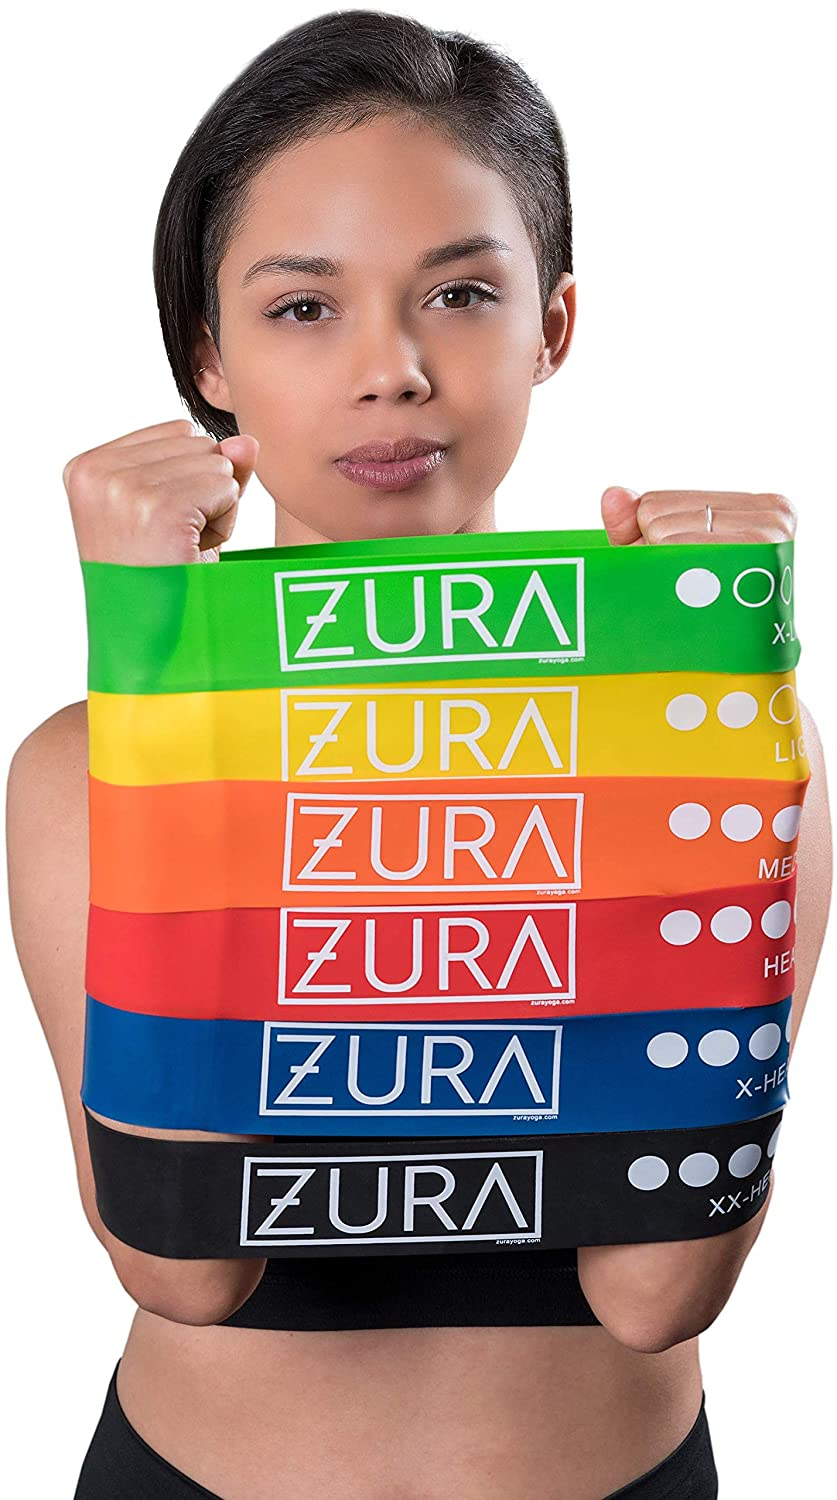 Set of 6 12-Inch Loop Workout Bands for All Levels with Free Bag ZURA Yoga Resistance Bands for Exercise Fitness